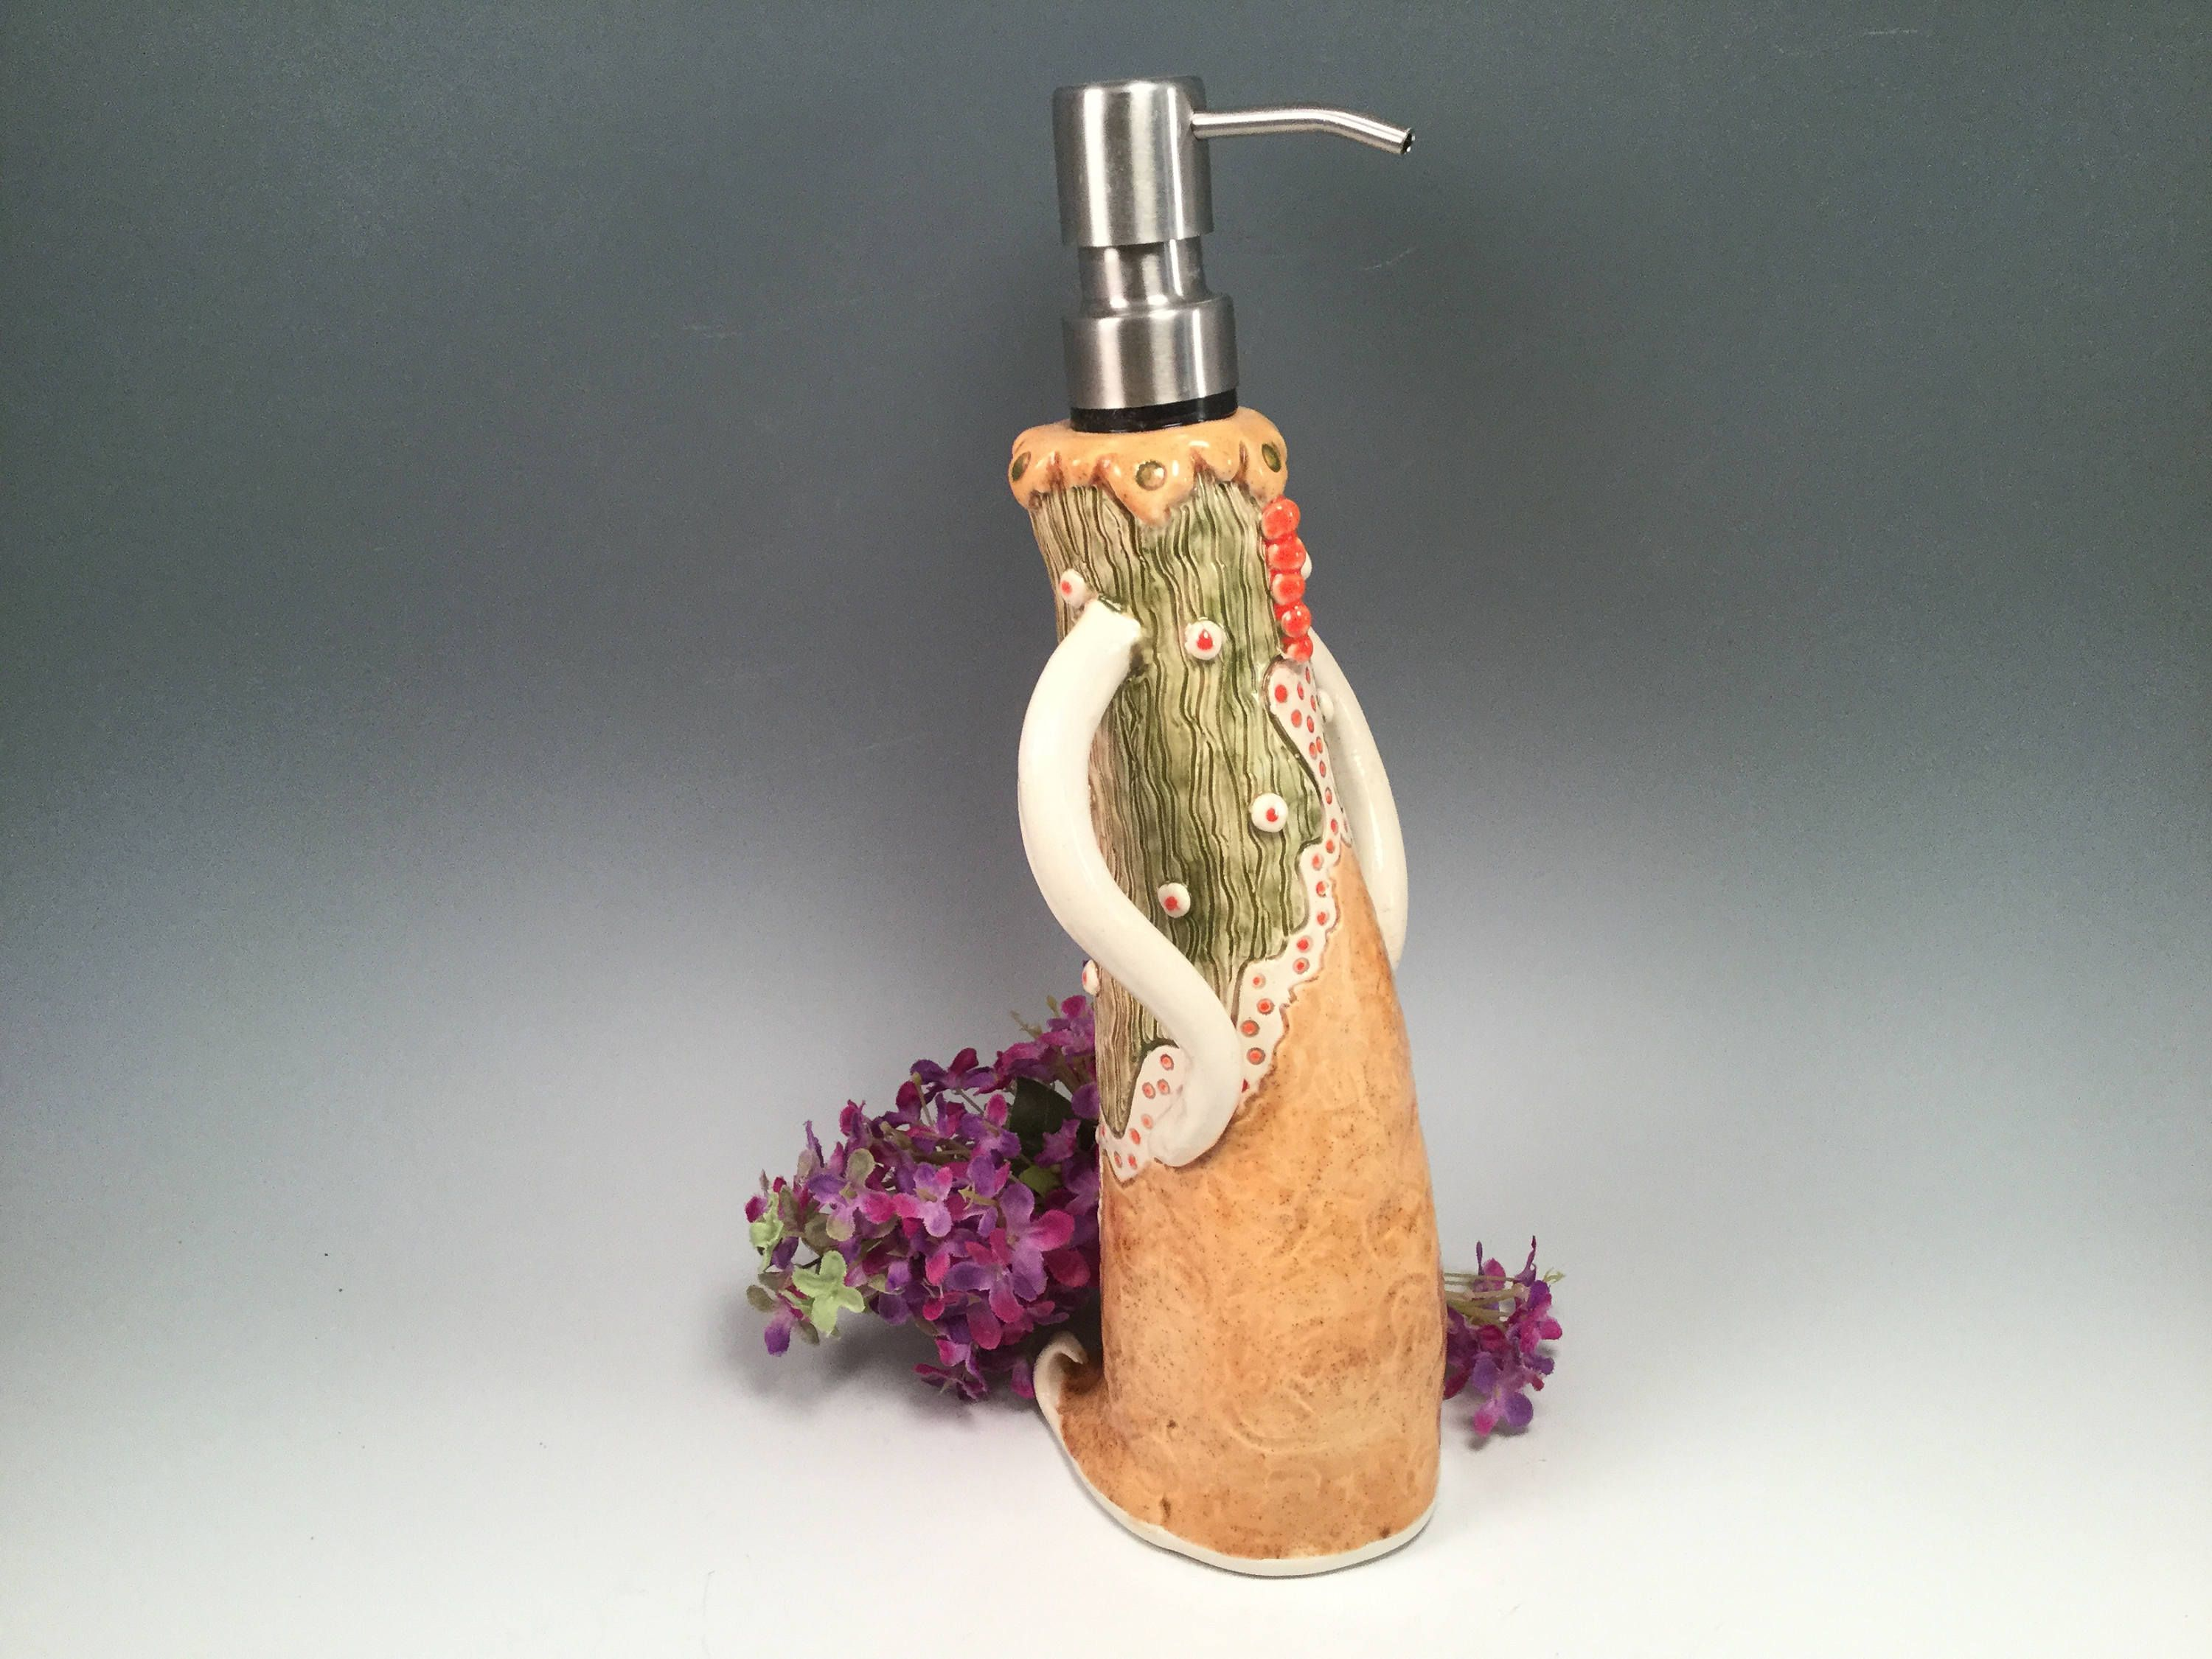 Soap Dispenser Soap Pump Bathroom Accessories Soap Pump Whimsical